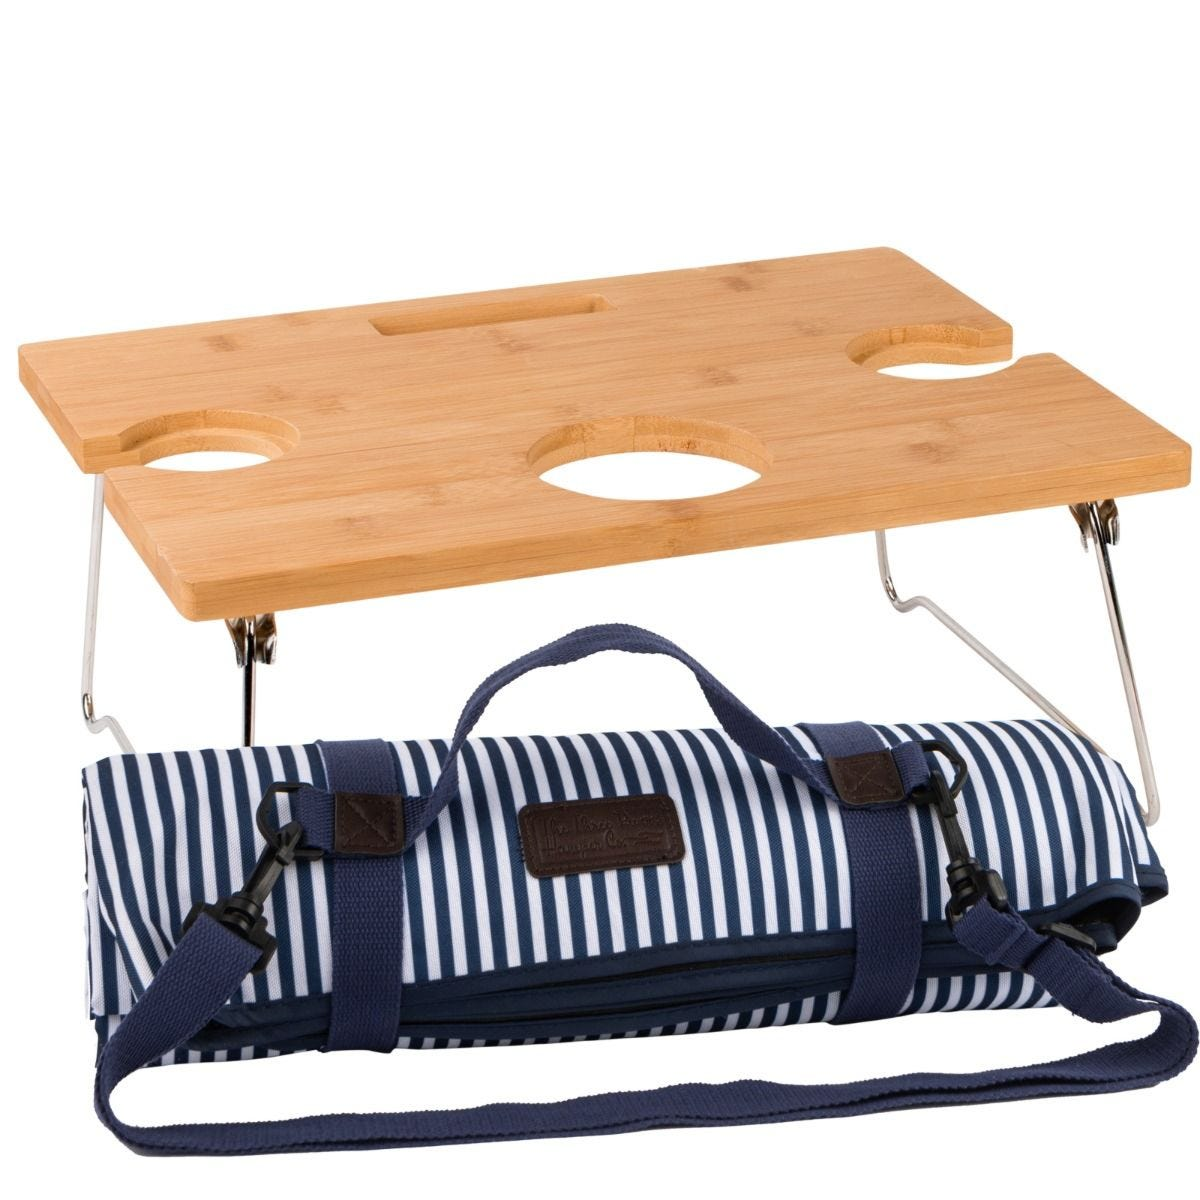 Three Rivers Striped Folding Table & Picnic Blanket - Navy/White